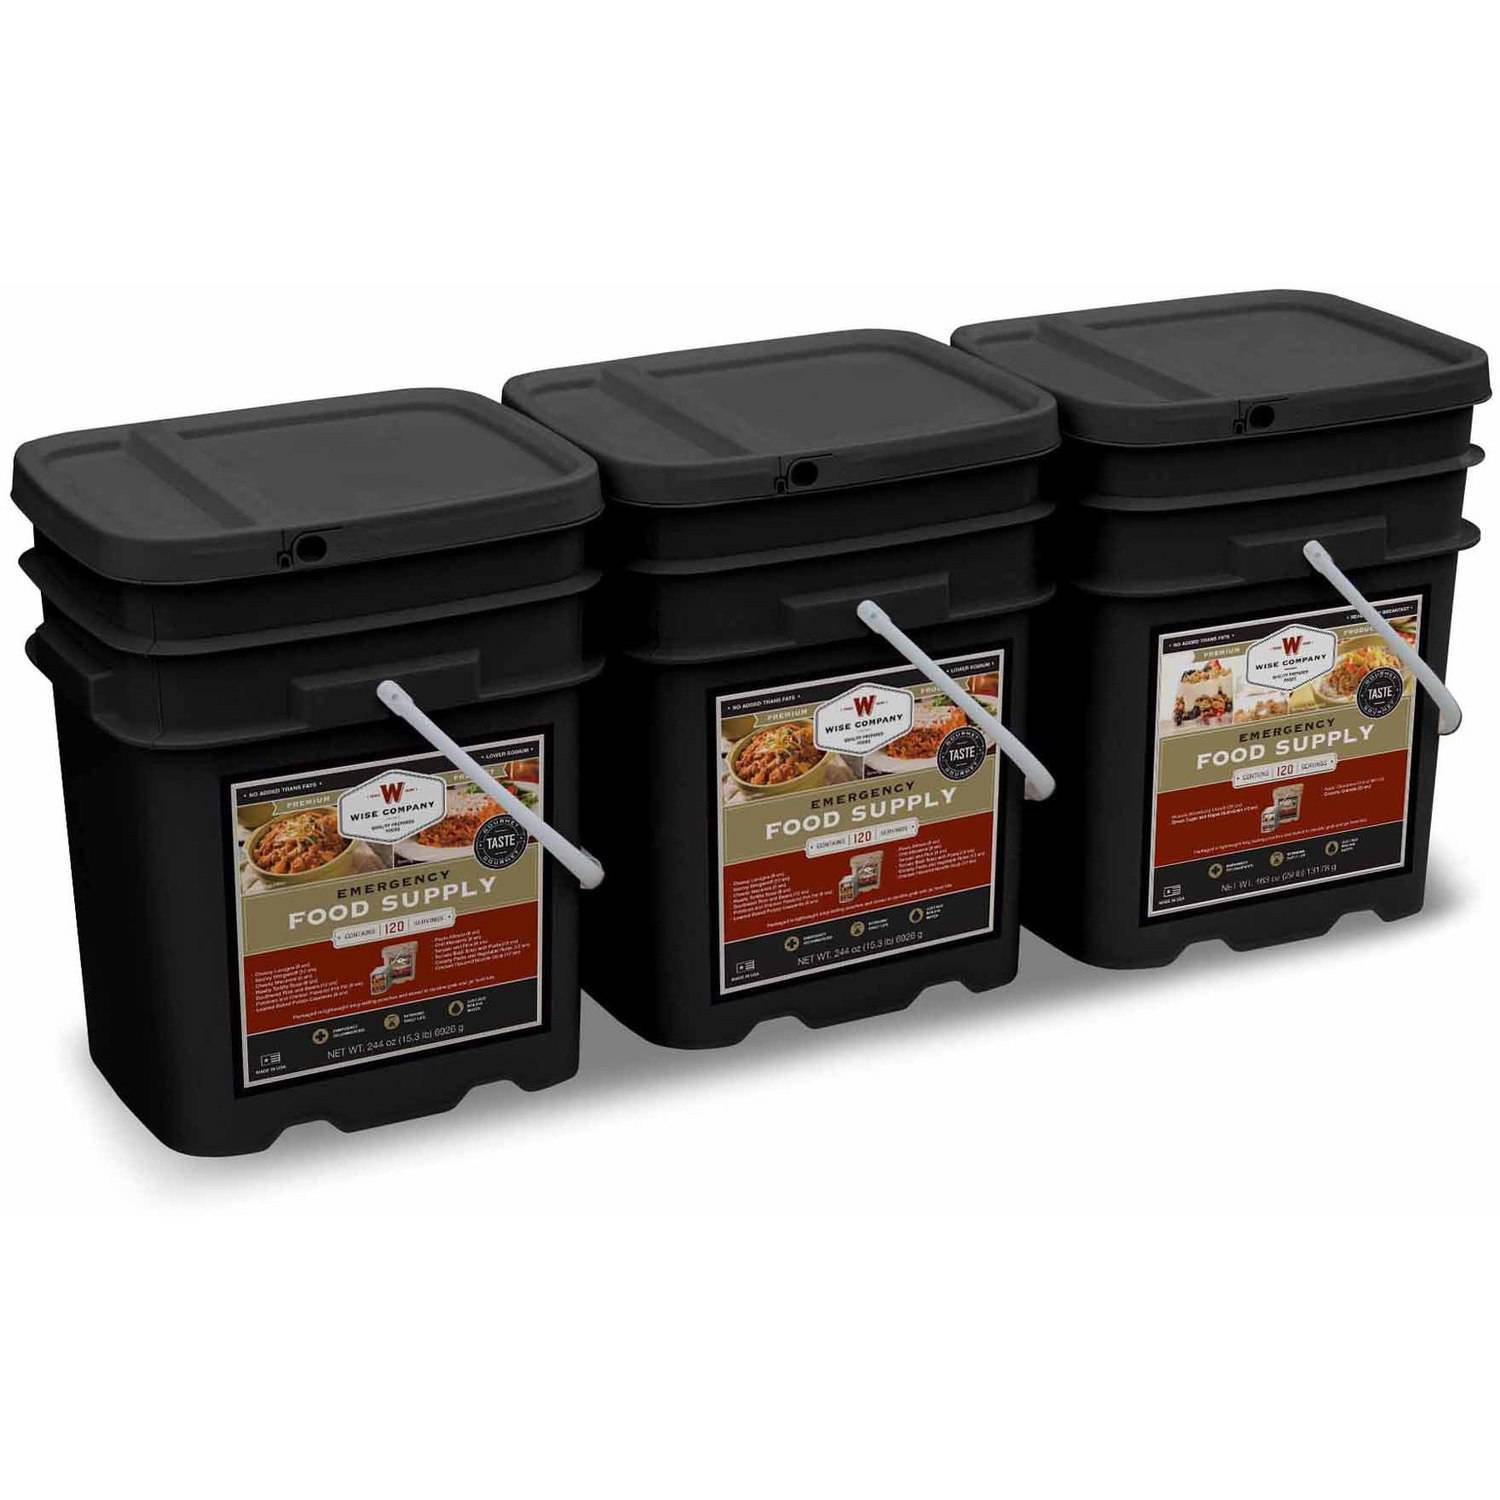 Wise 360 Servings of Emergency Survival Food Storage. 1 Month Supply for 4 Adults (3 Servings Daily)